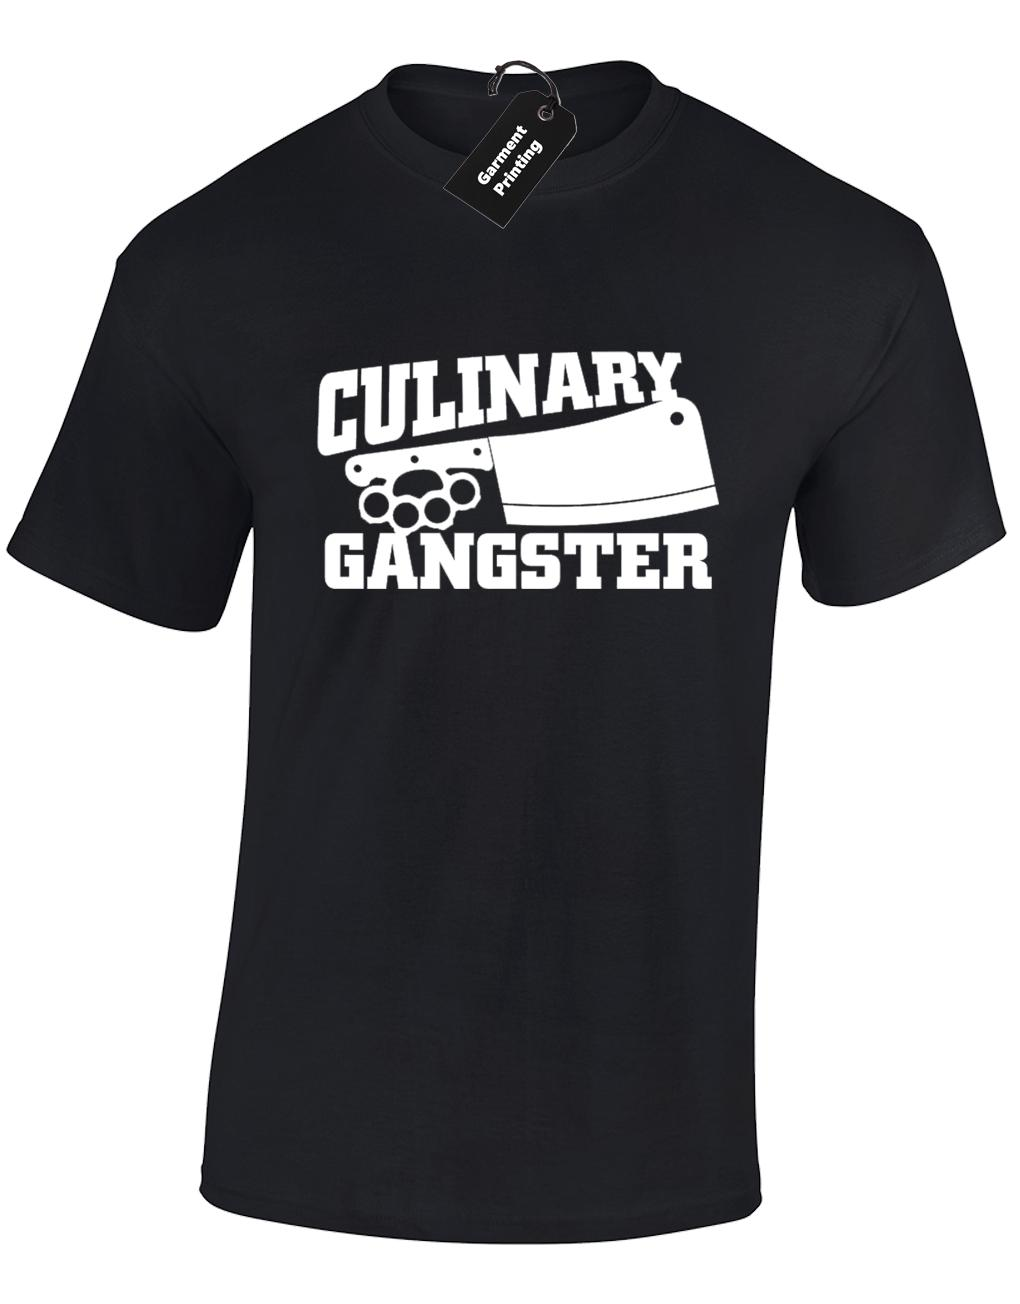 de6c4e534 CULINARY GANGSTER MENS T SHIRT FUNNY CHEF COOK BAKE OFF GIFT INSTAGRAM  TUMBLR Funny Unisex Casual Gift T Shirt Logos Trendy T Shirts From  Superstartees, ...